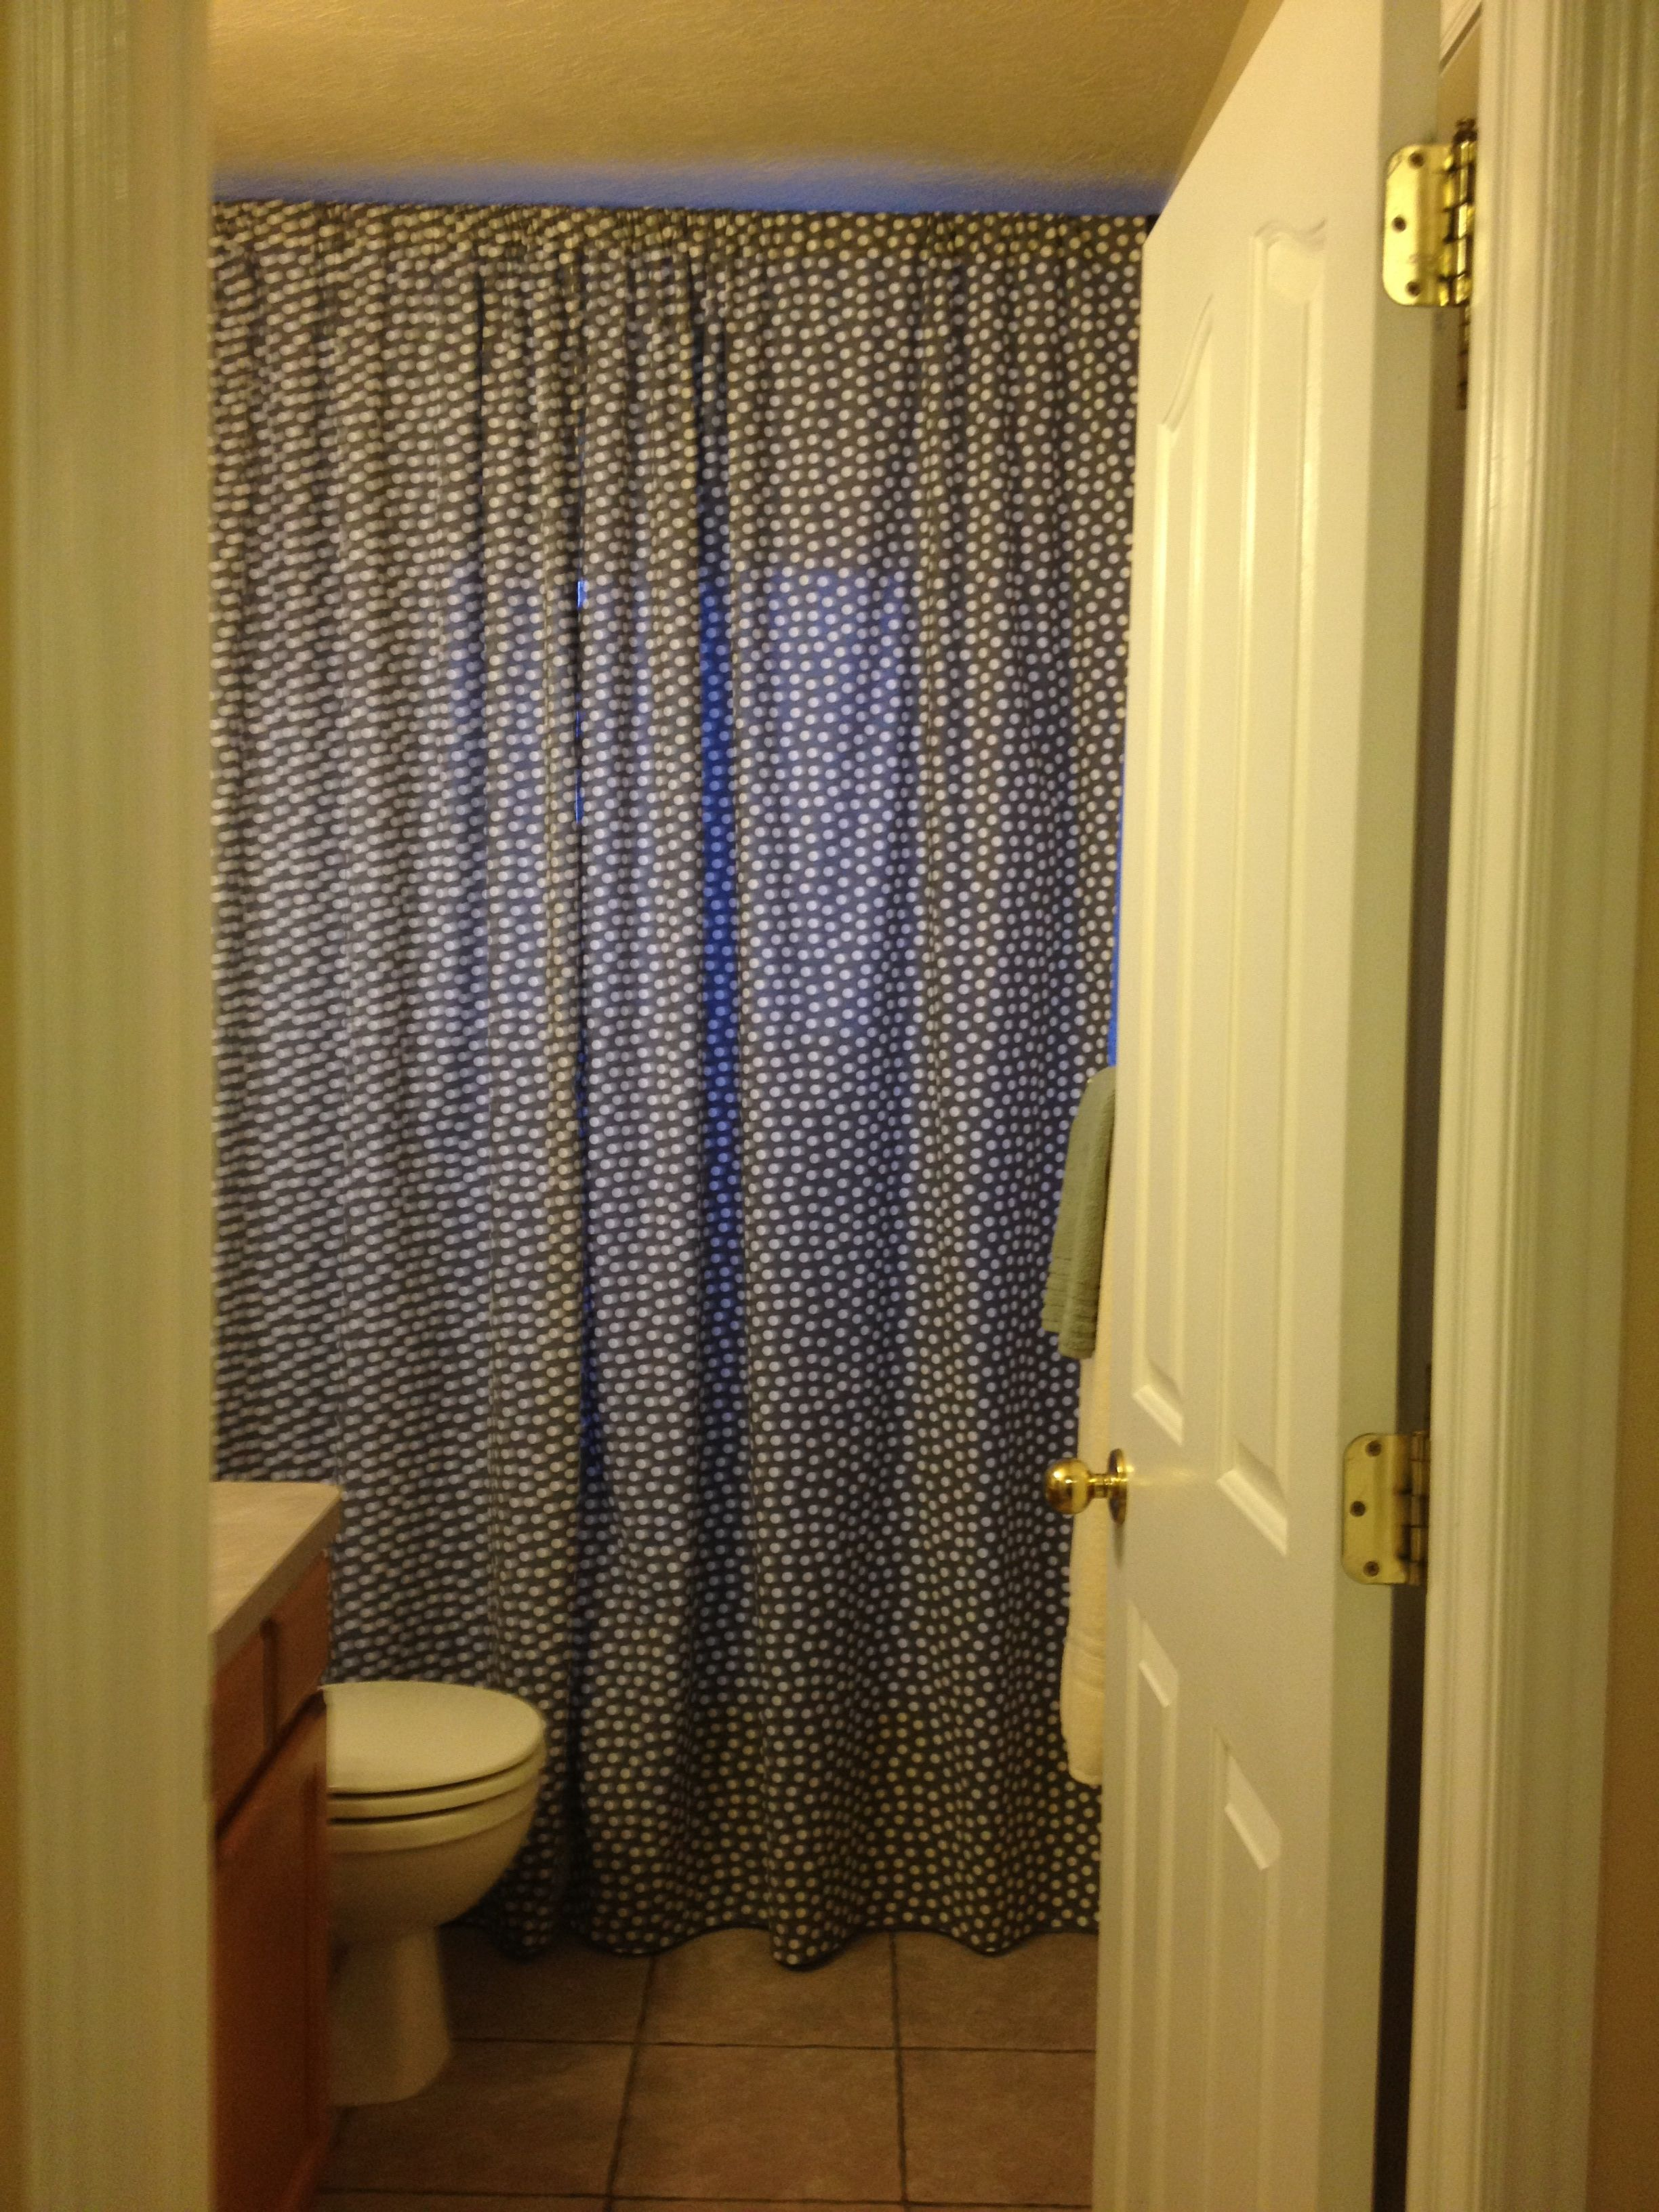 Floor To Ceiling Polka Dot Shower Curtain 35 Liner 84x72 Bed